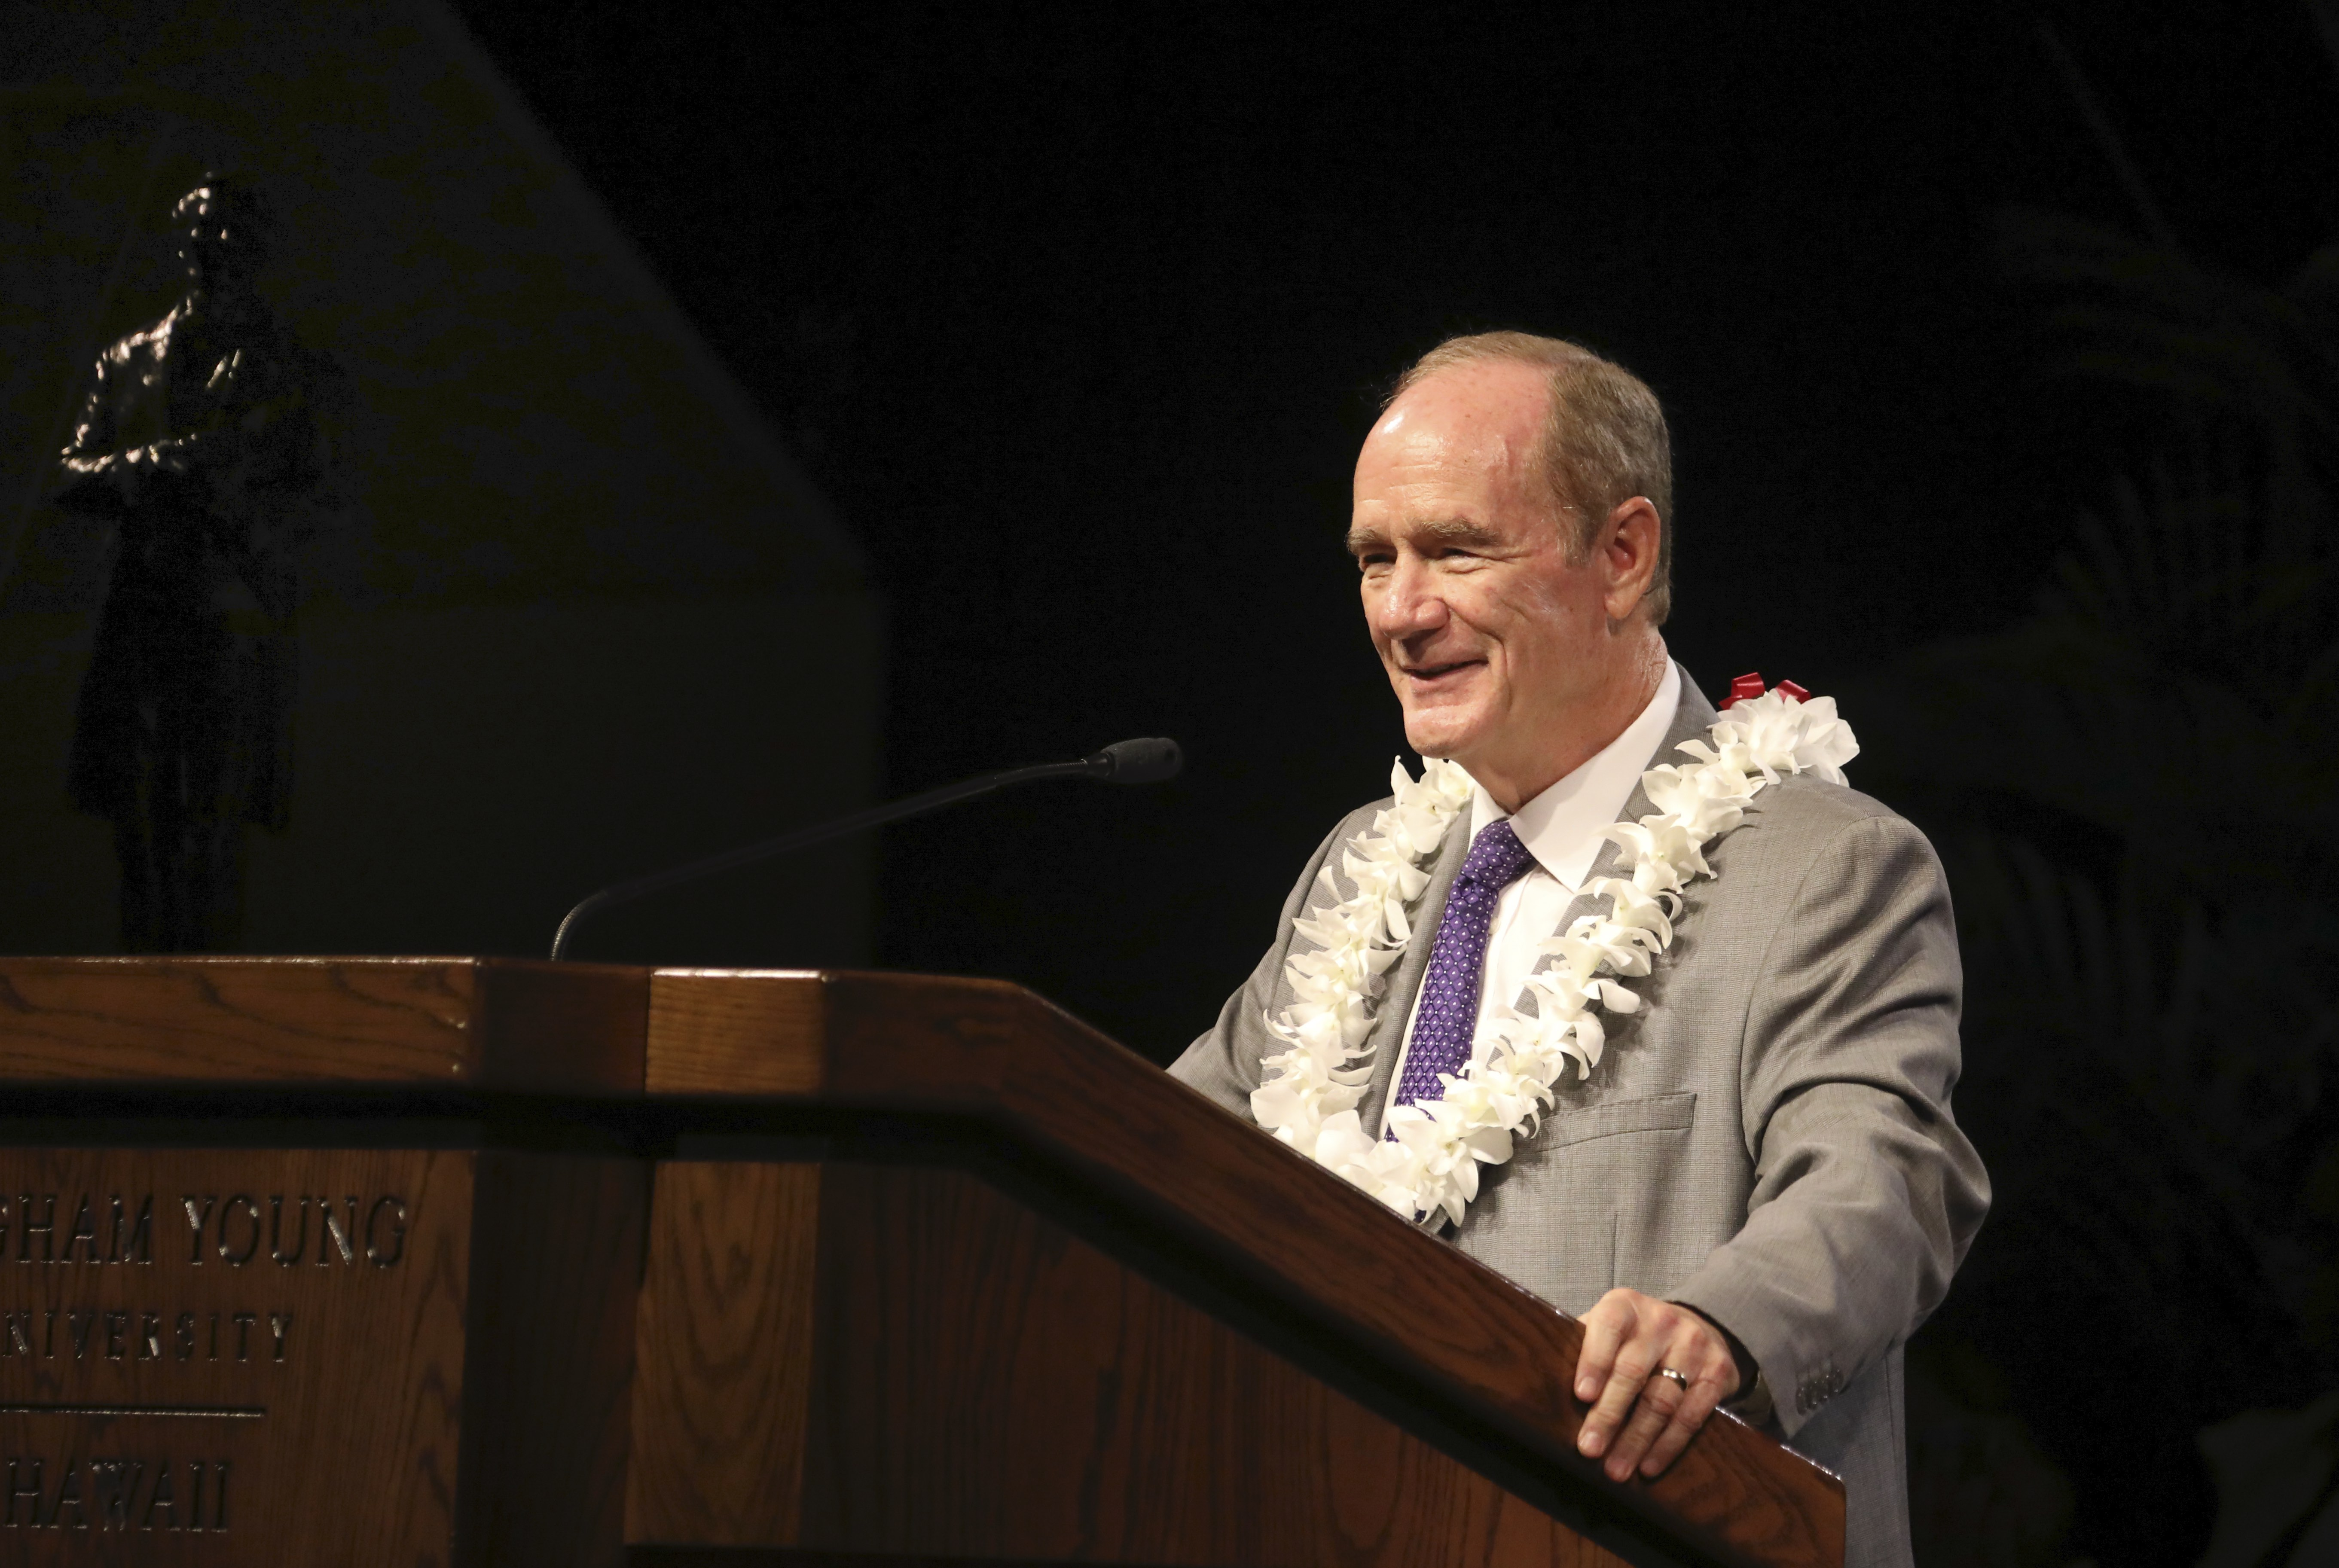 President John S. Tanner speaks to students at the BYU - Hawaii Devotional on September 10, 2019.